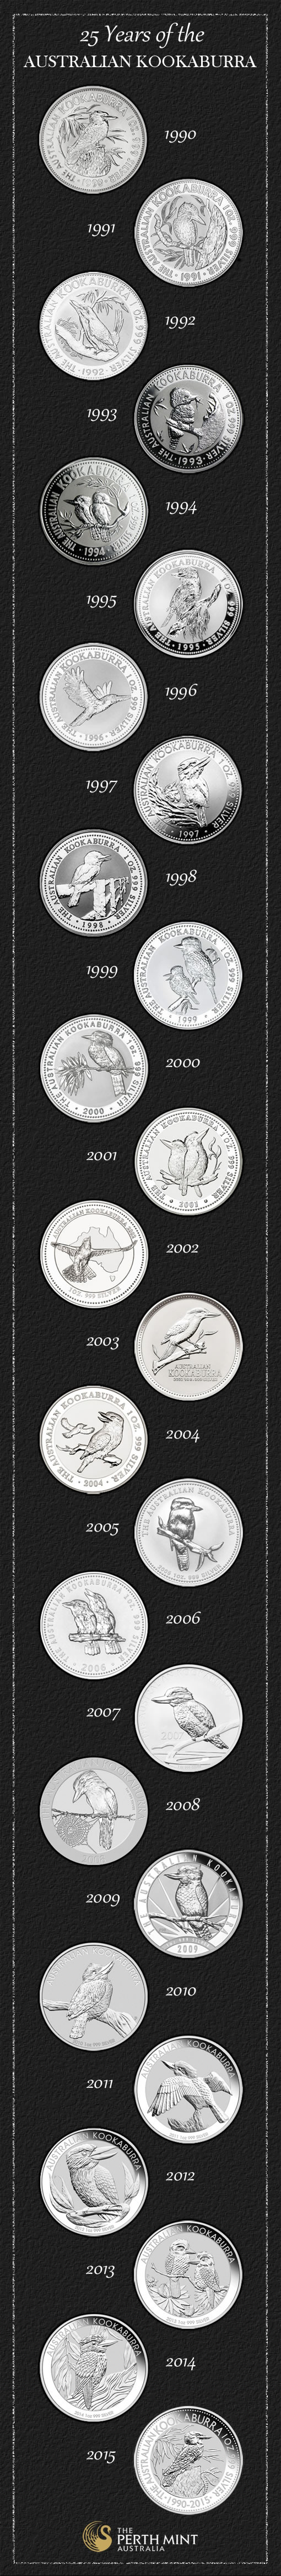 Kookaburra Silver Bullion Coin Designs from 1990 to 2015